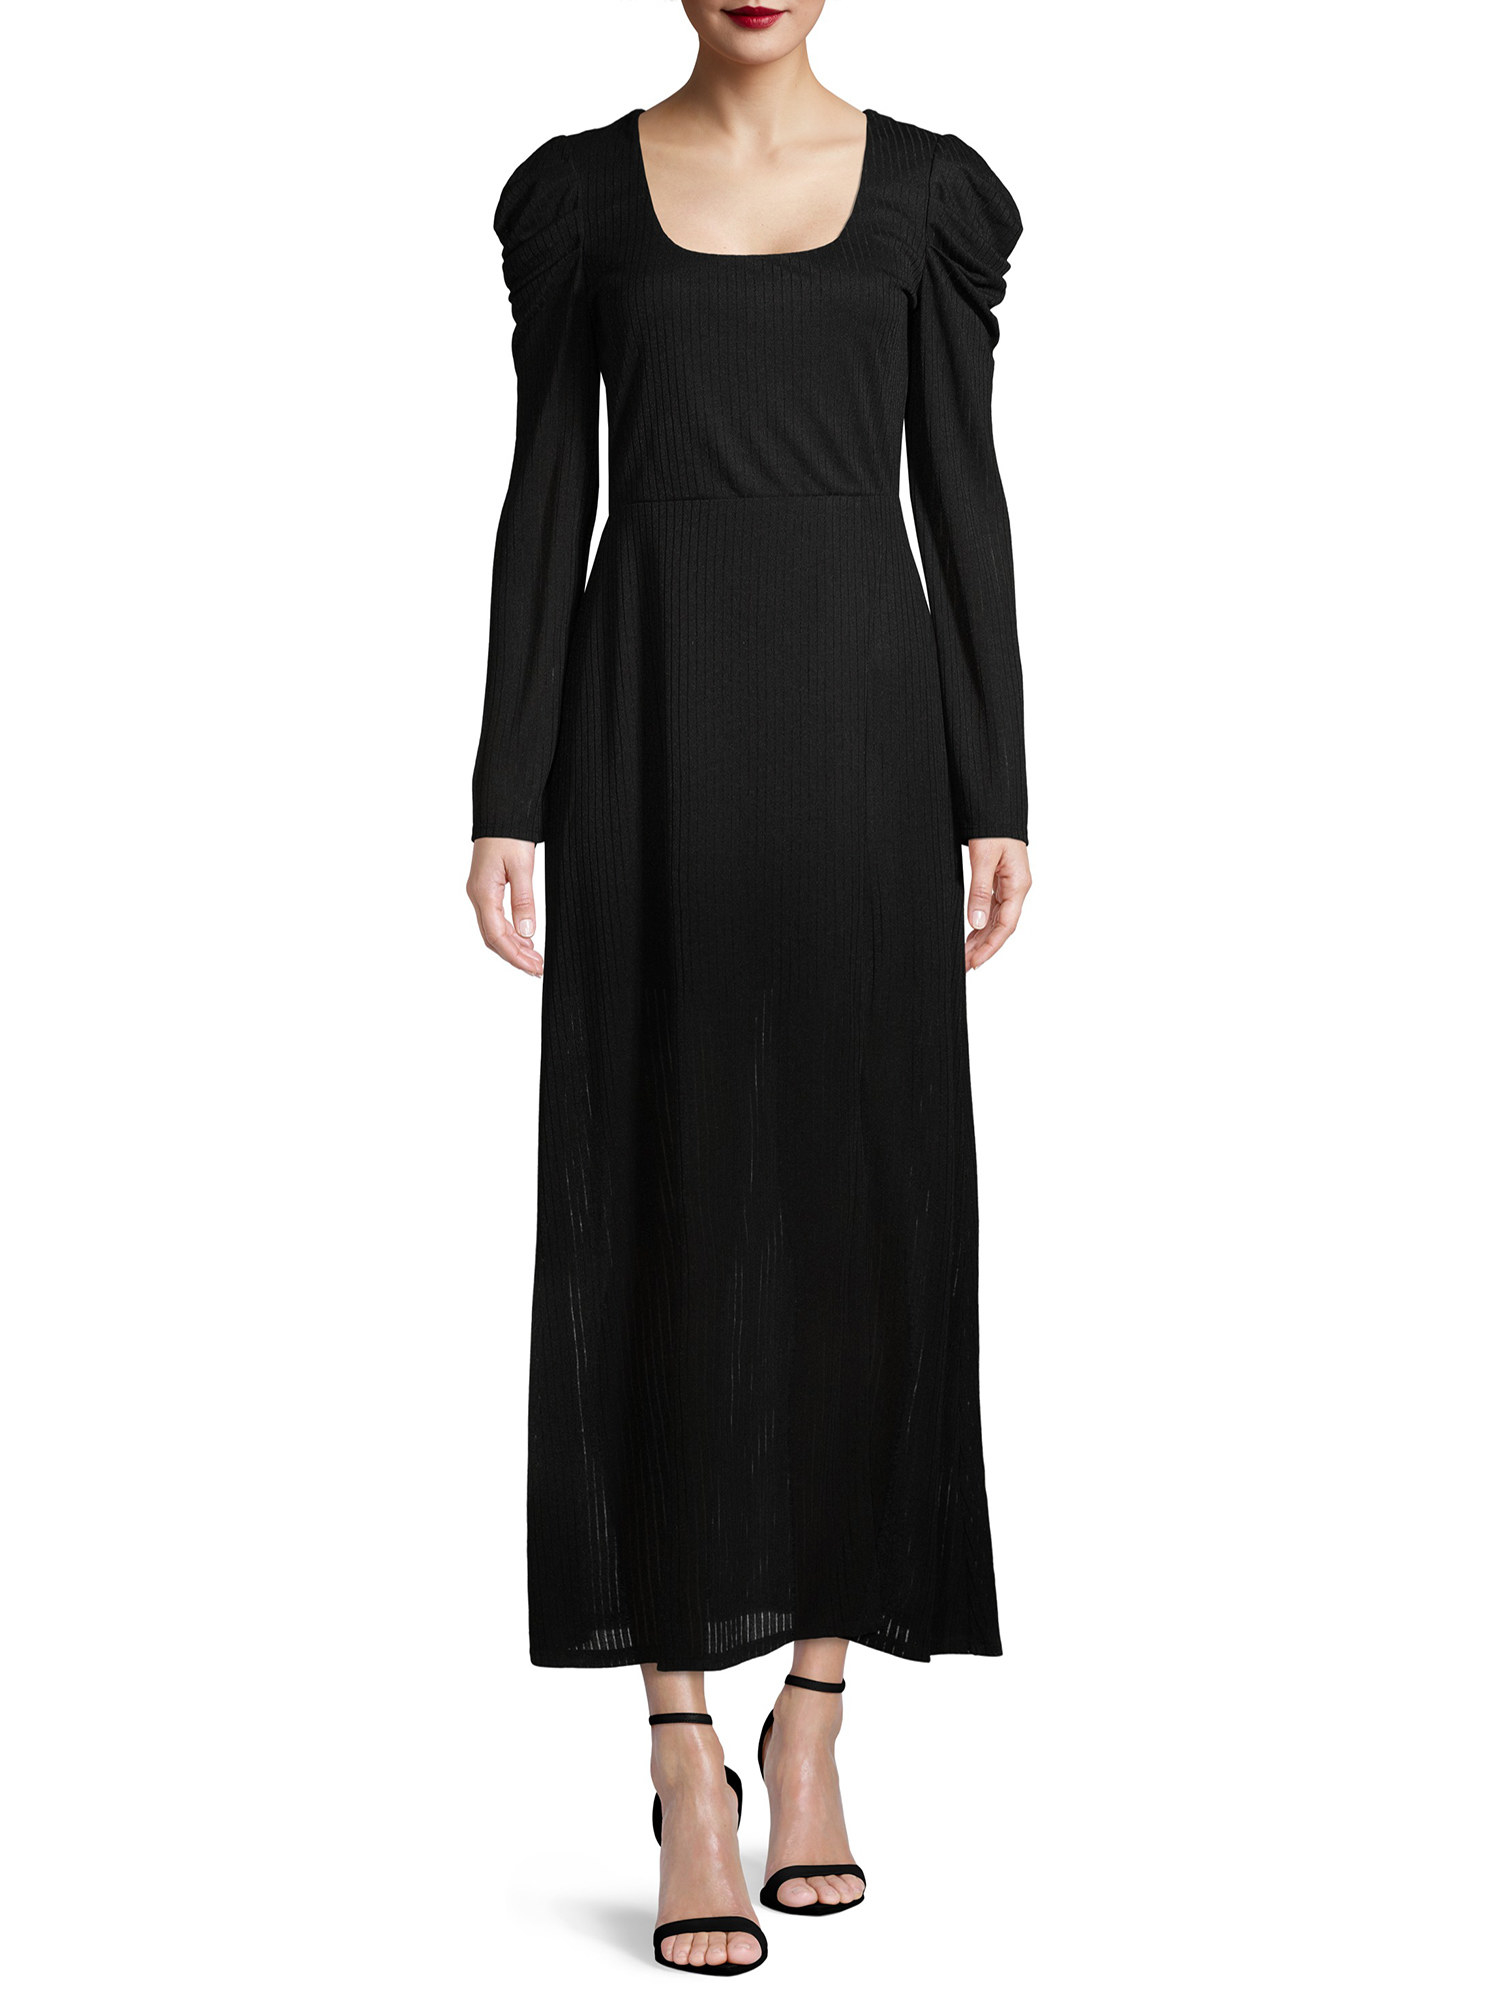 The black puff-sleeve maxi dress